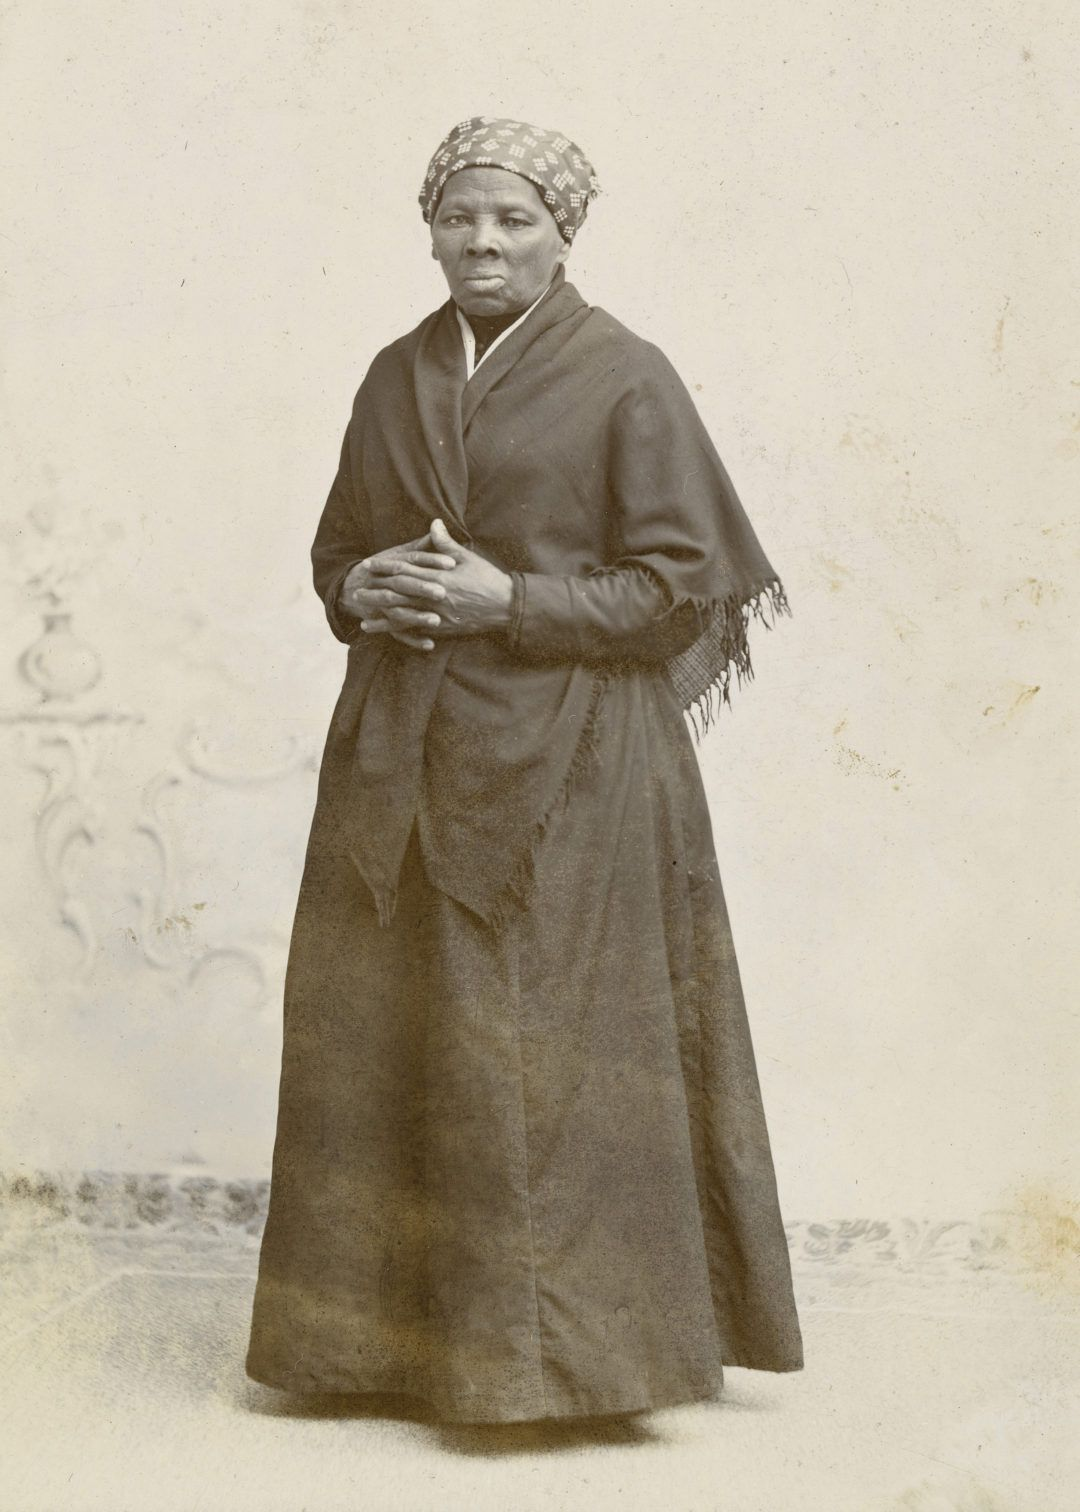 I Took An Emotional Road Trip Along The Harriet Tubman Underground Railroad Byway Harriet Tubman Underground Railroad Harriet Tubman Pictures Harriet Tubman